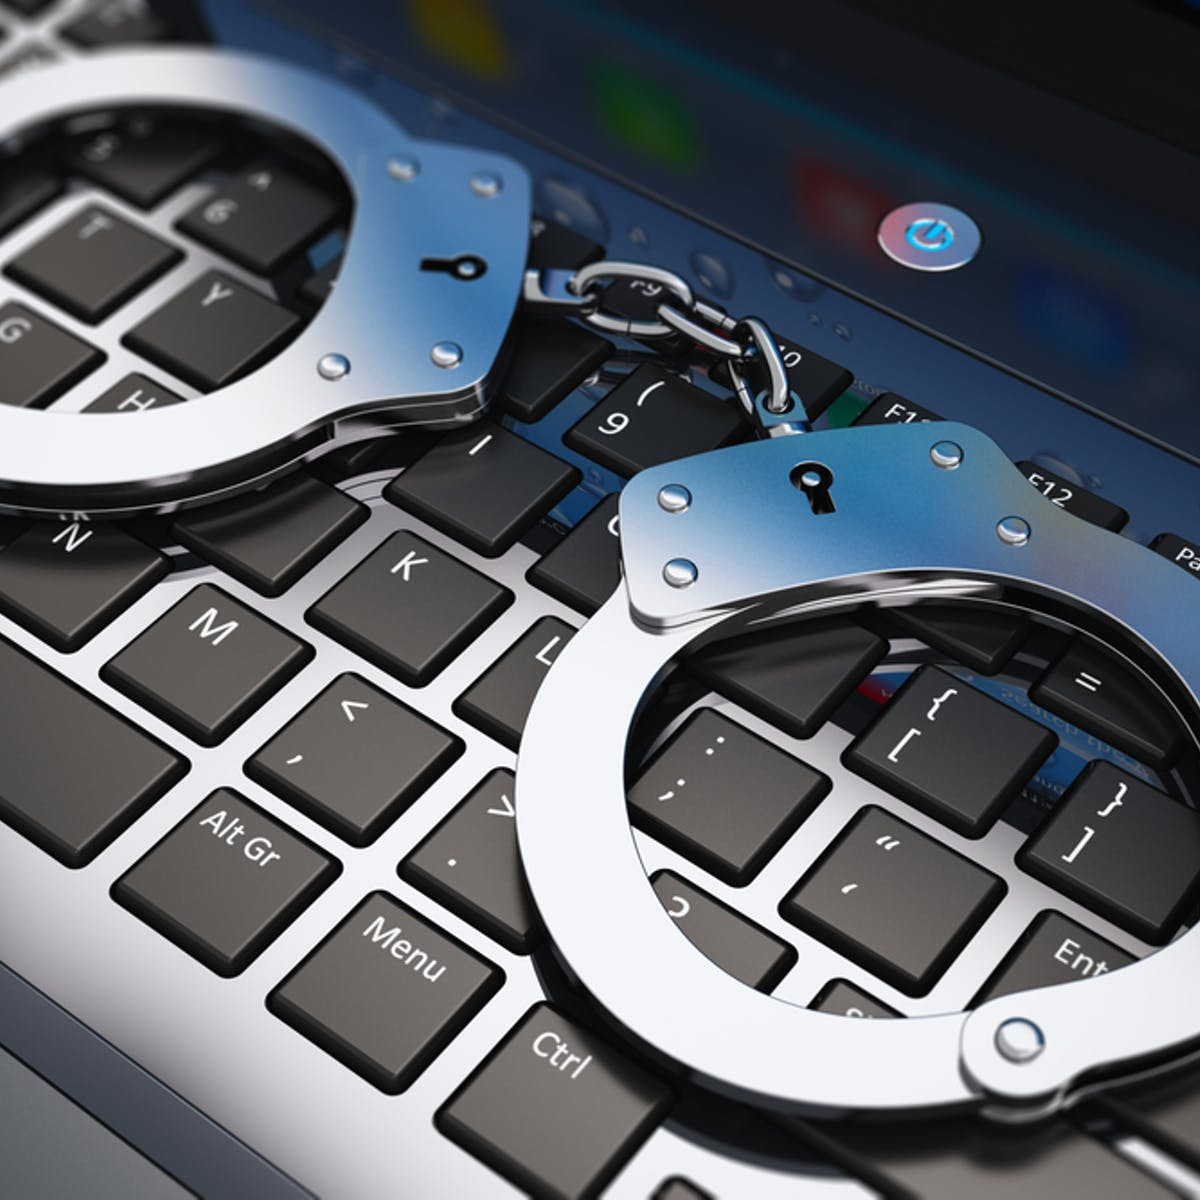 Cybercrime: 17 Lakh Doped From A Couple Offering 2 Crore For Kideny